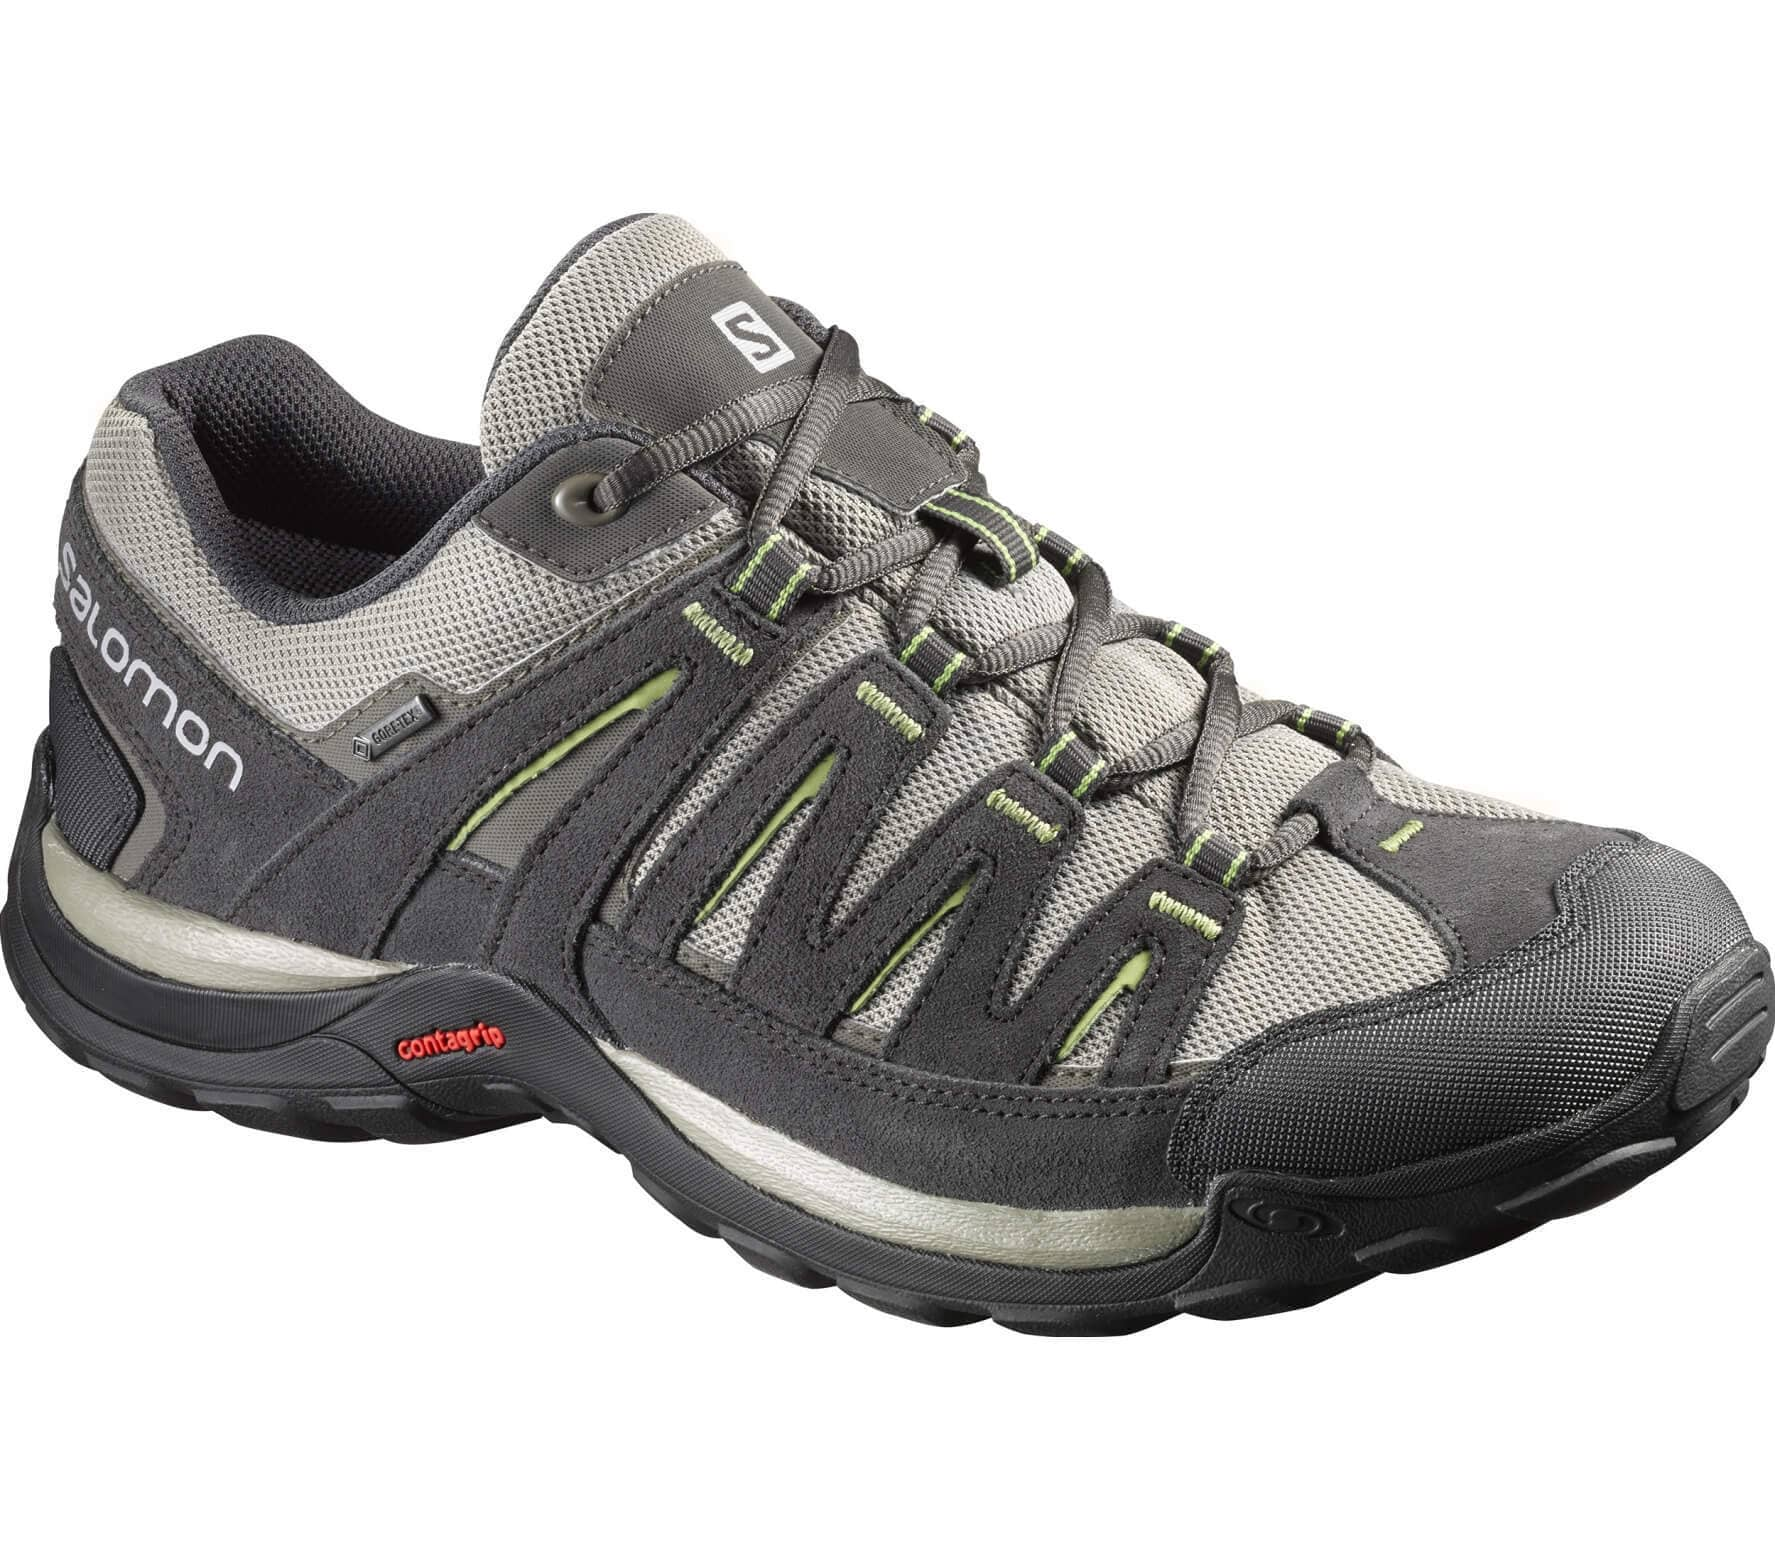 Salomon Norwood GTX men's hiking shoes Herren